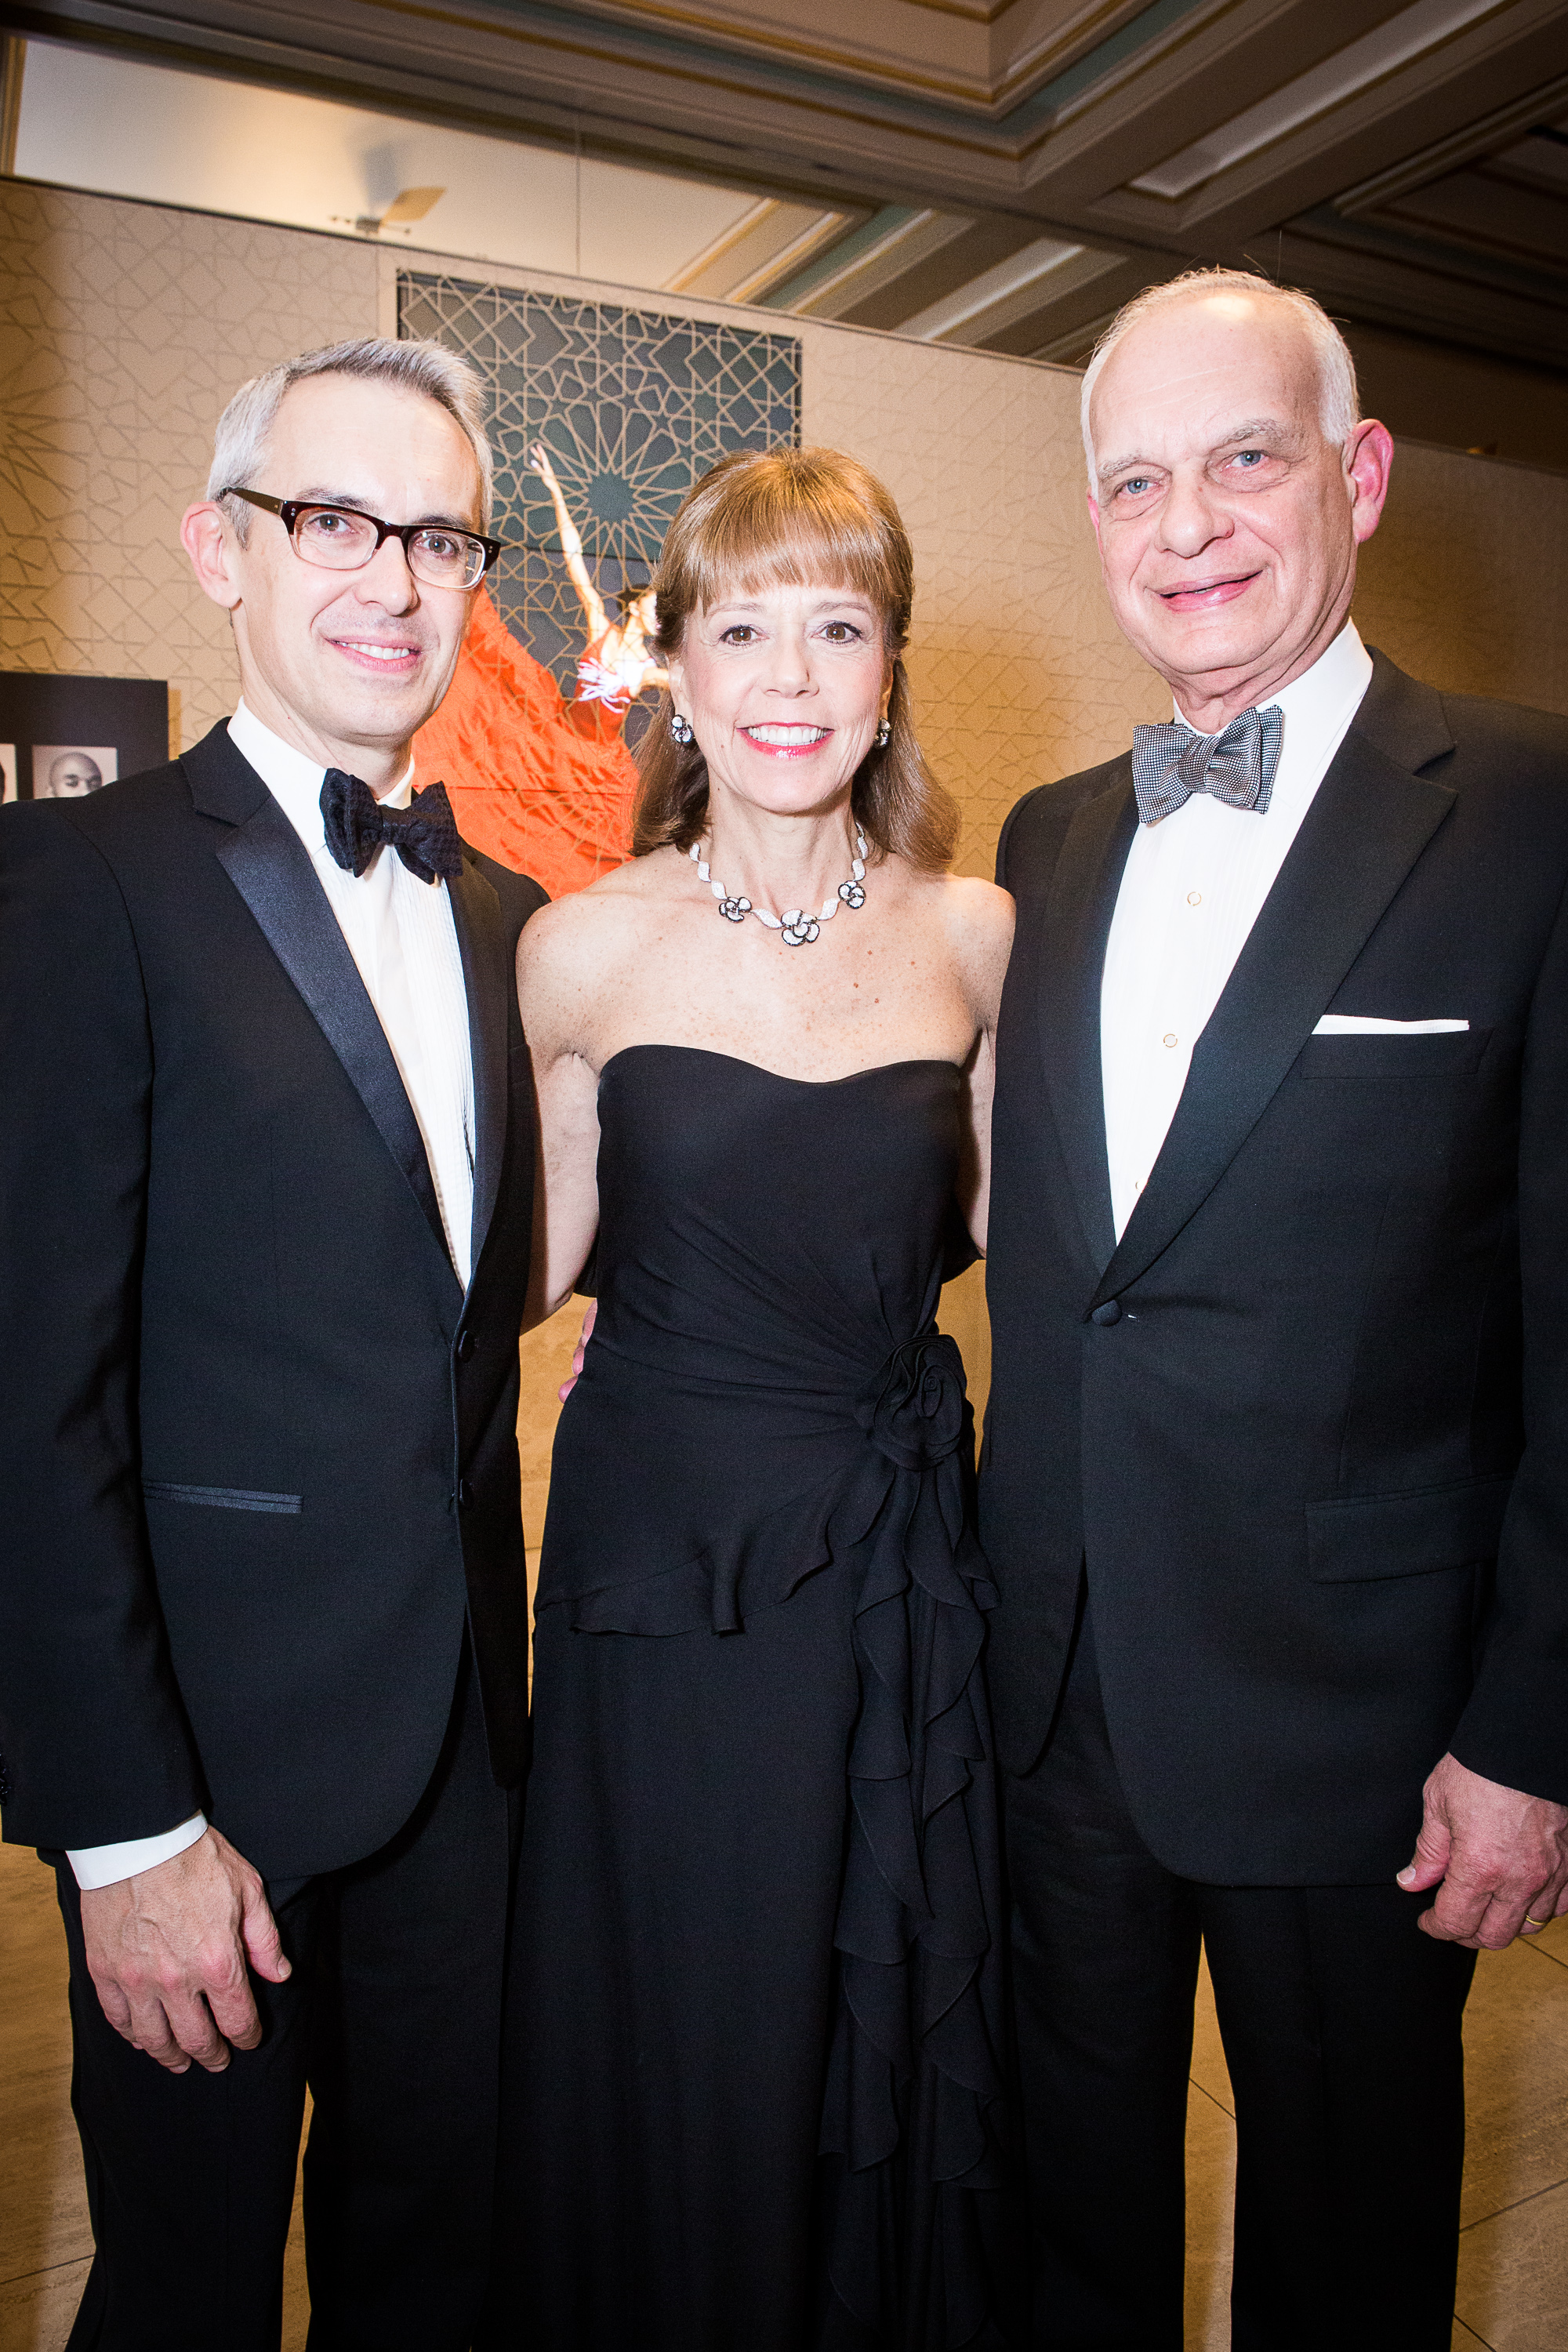 Bennett Rink, Daria L. & Eric J. Wallach at Alvin Ailey American Dance Theater's 2013 Opening Night Gala.  Photo by Dario Calmese